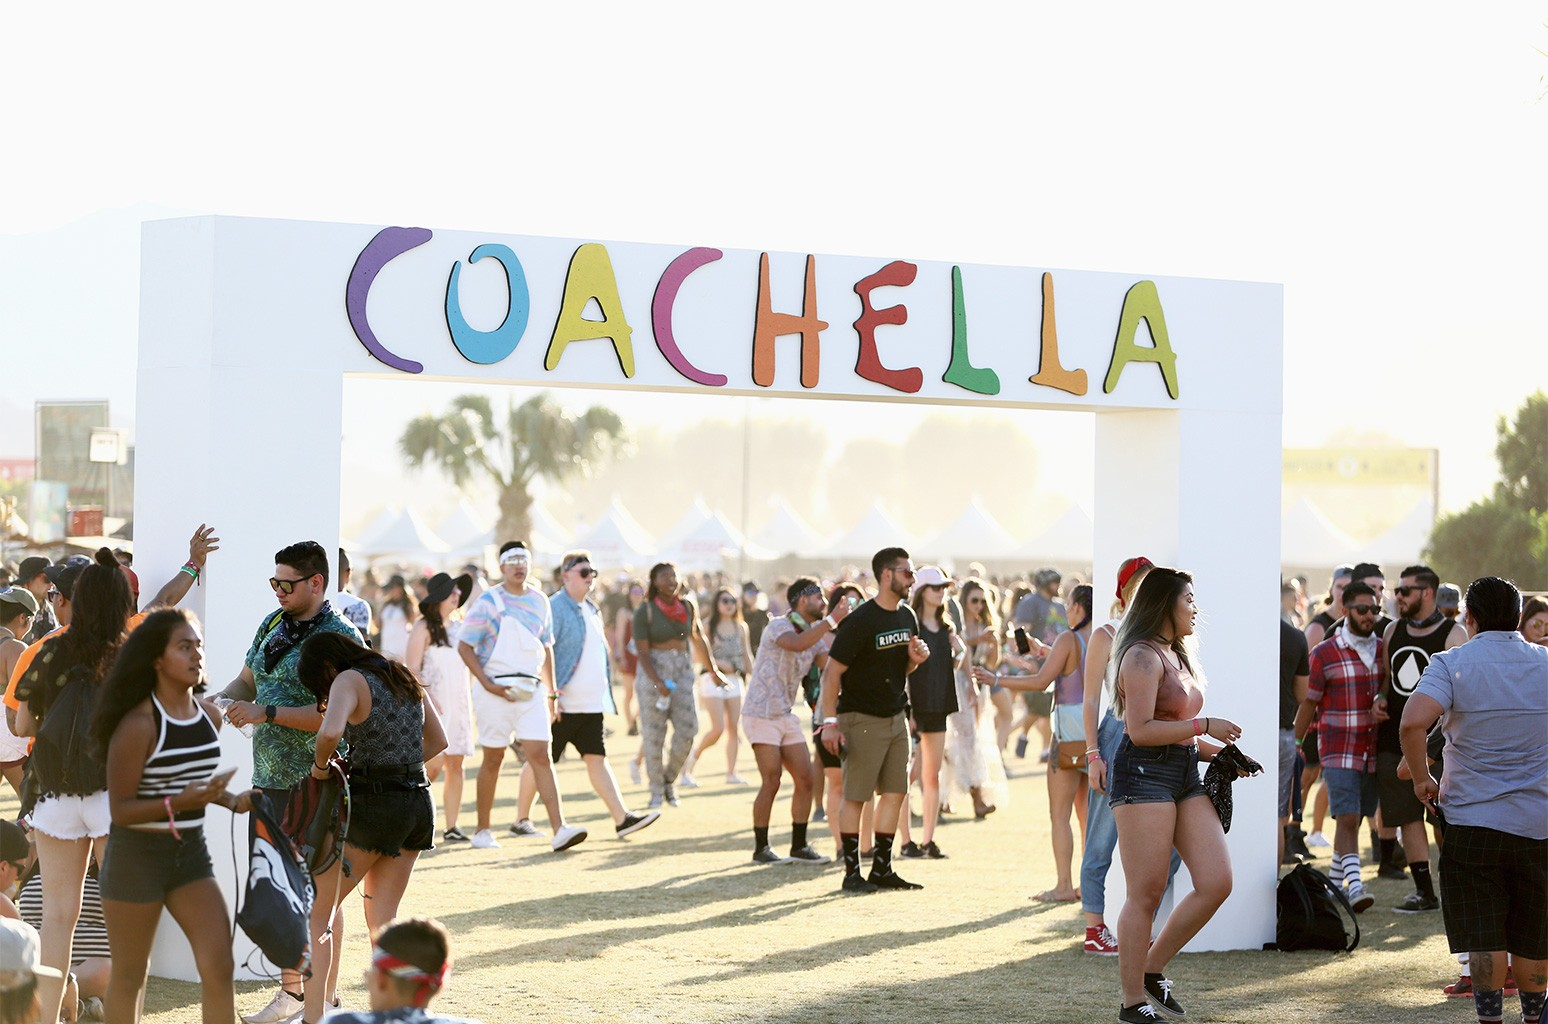 Festivalgoers attend day 2 of the 2017 Coachella Valley Music & Arts Festival (Weekend 2) at the Empire Polo Club on April 22, 2017 in Indio, Calif.